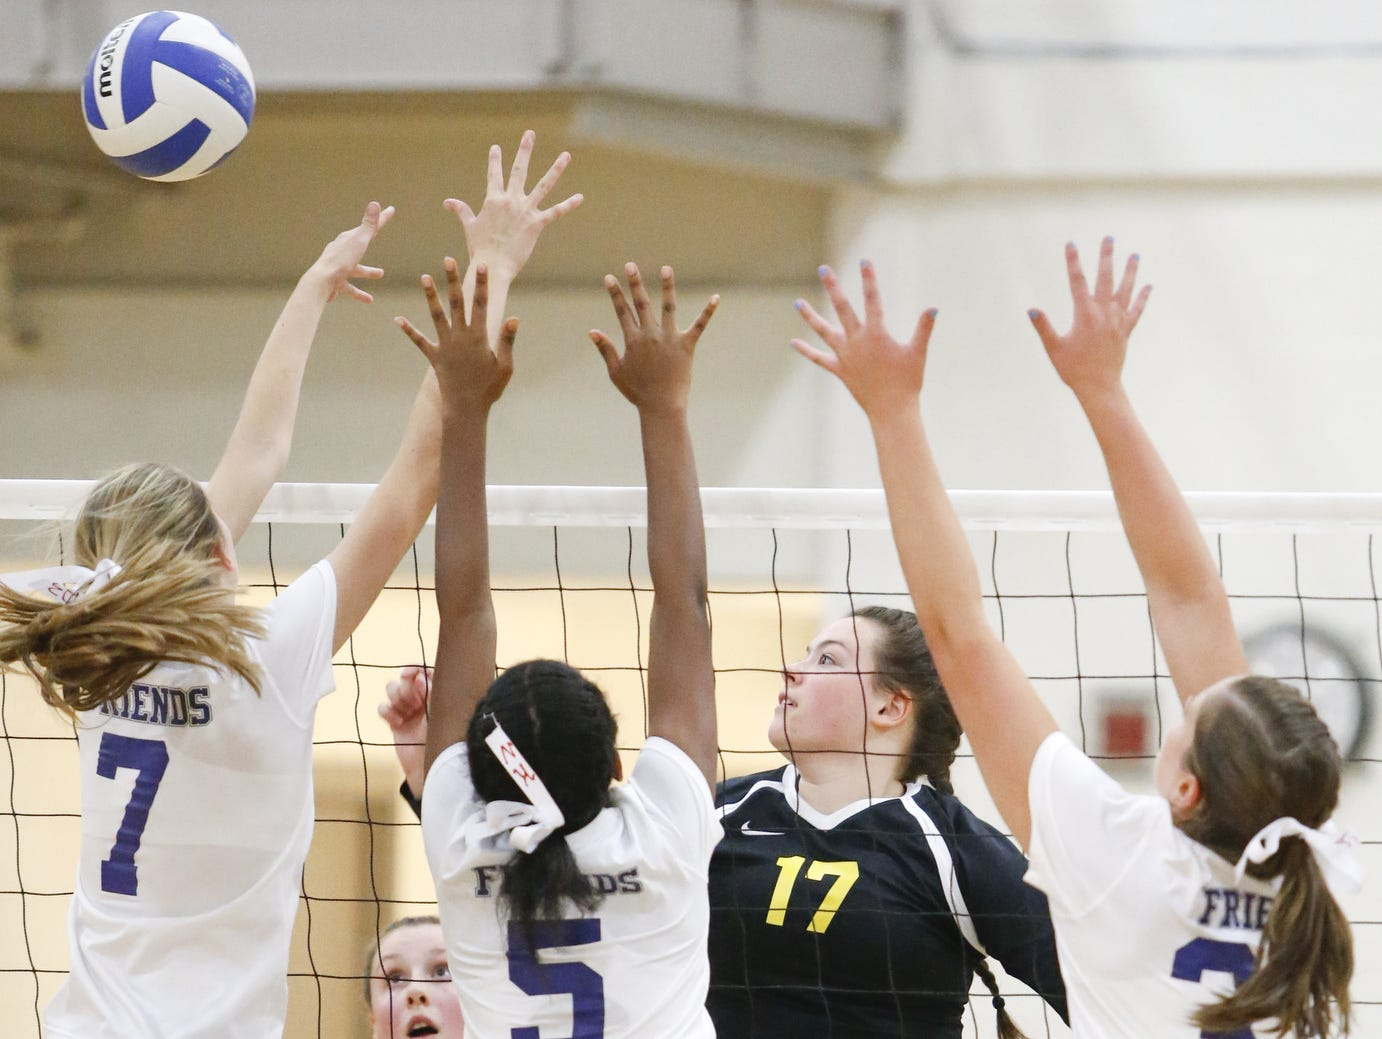 Padua's Gabriella Walsh (17) hits over the Wilmington Friends defense in the second game of Padua's 3-0 win at Wilmington Friends on Thursday.